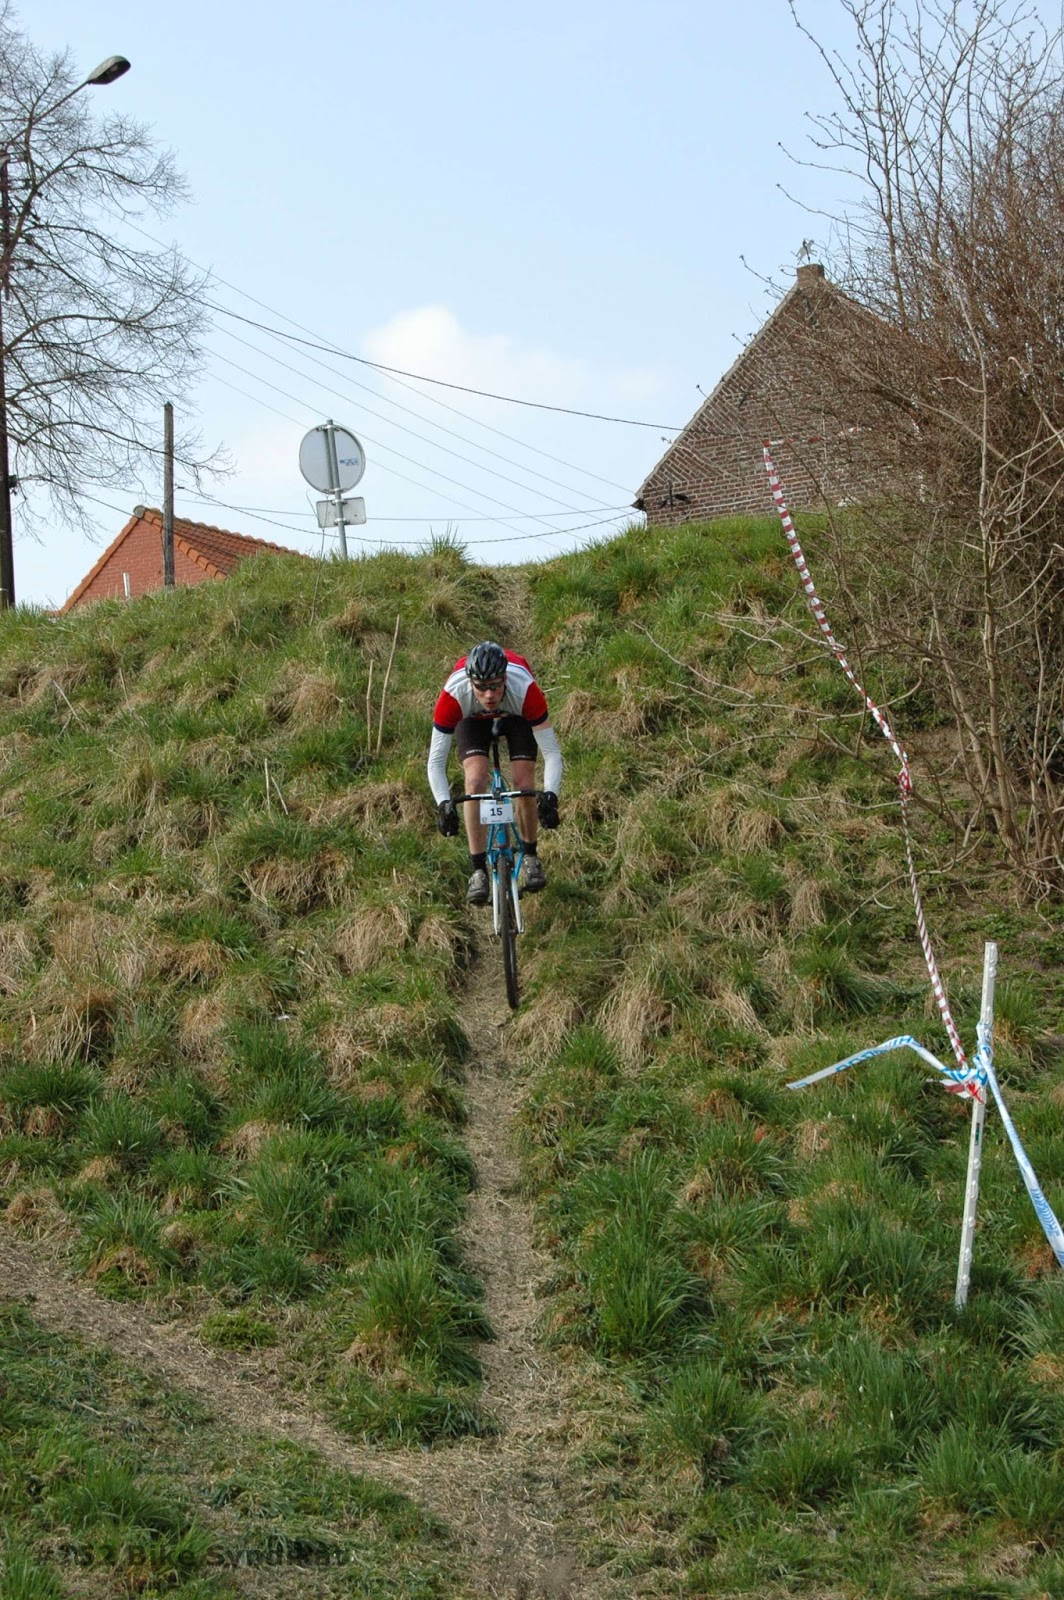 Steep downhill